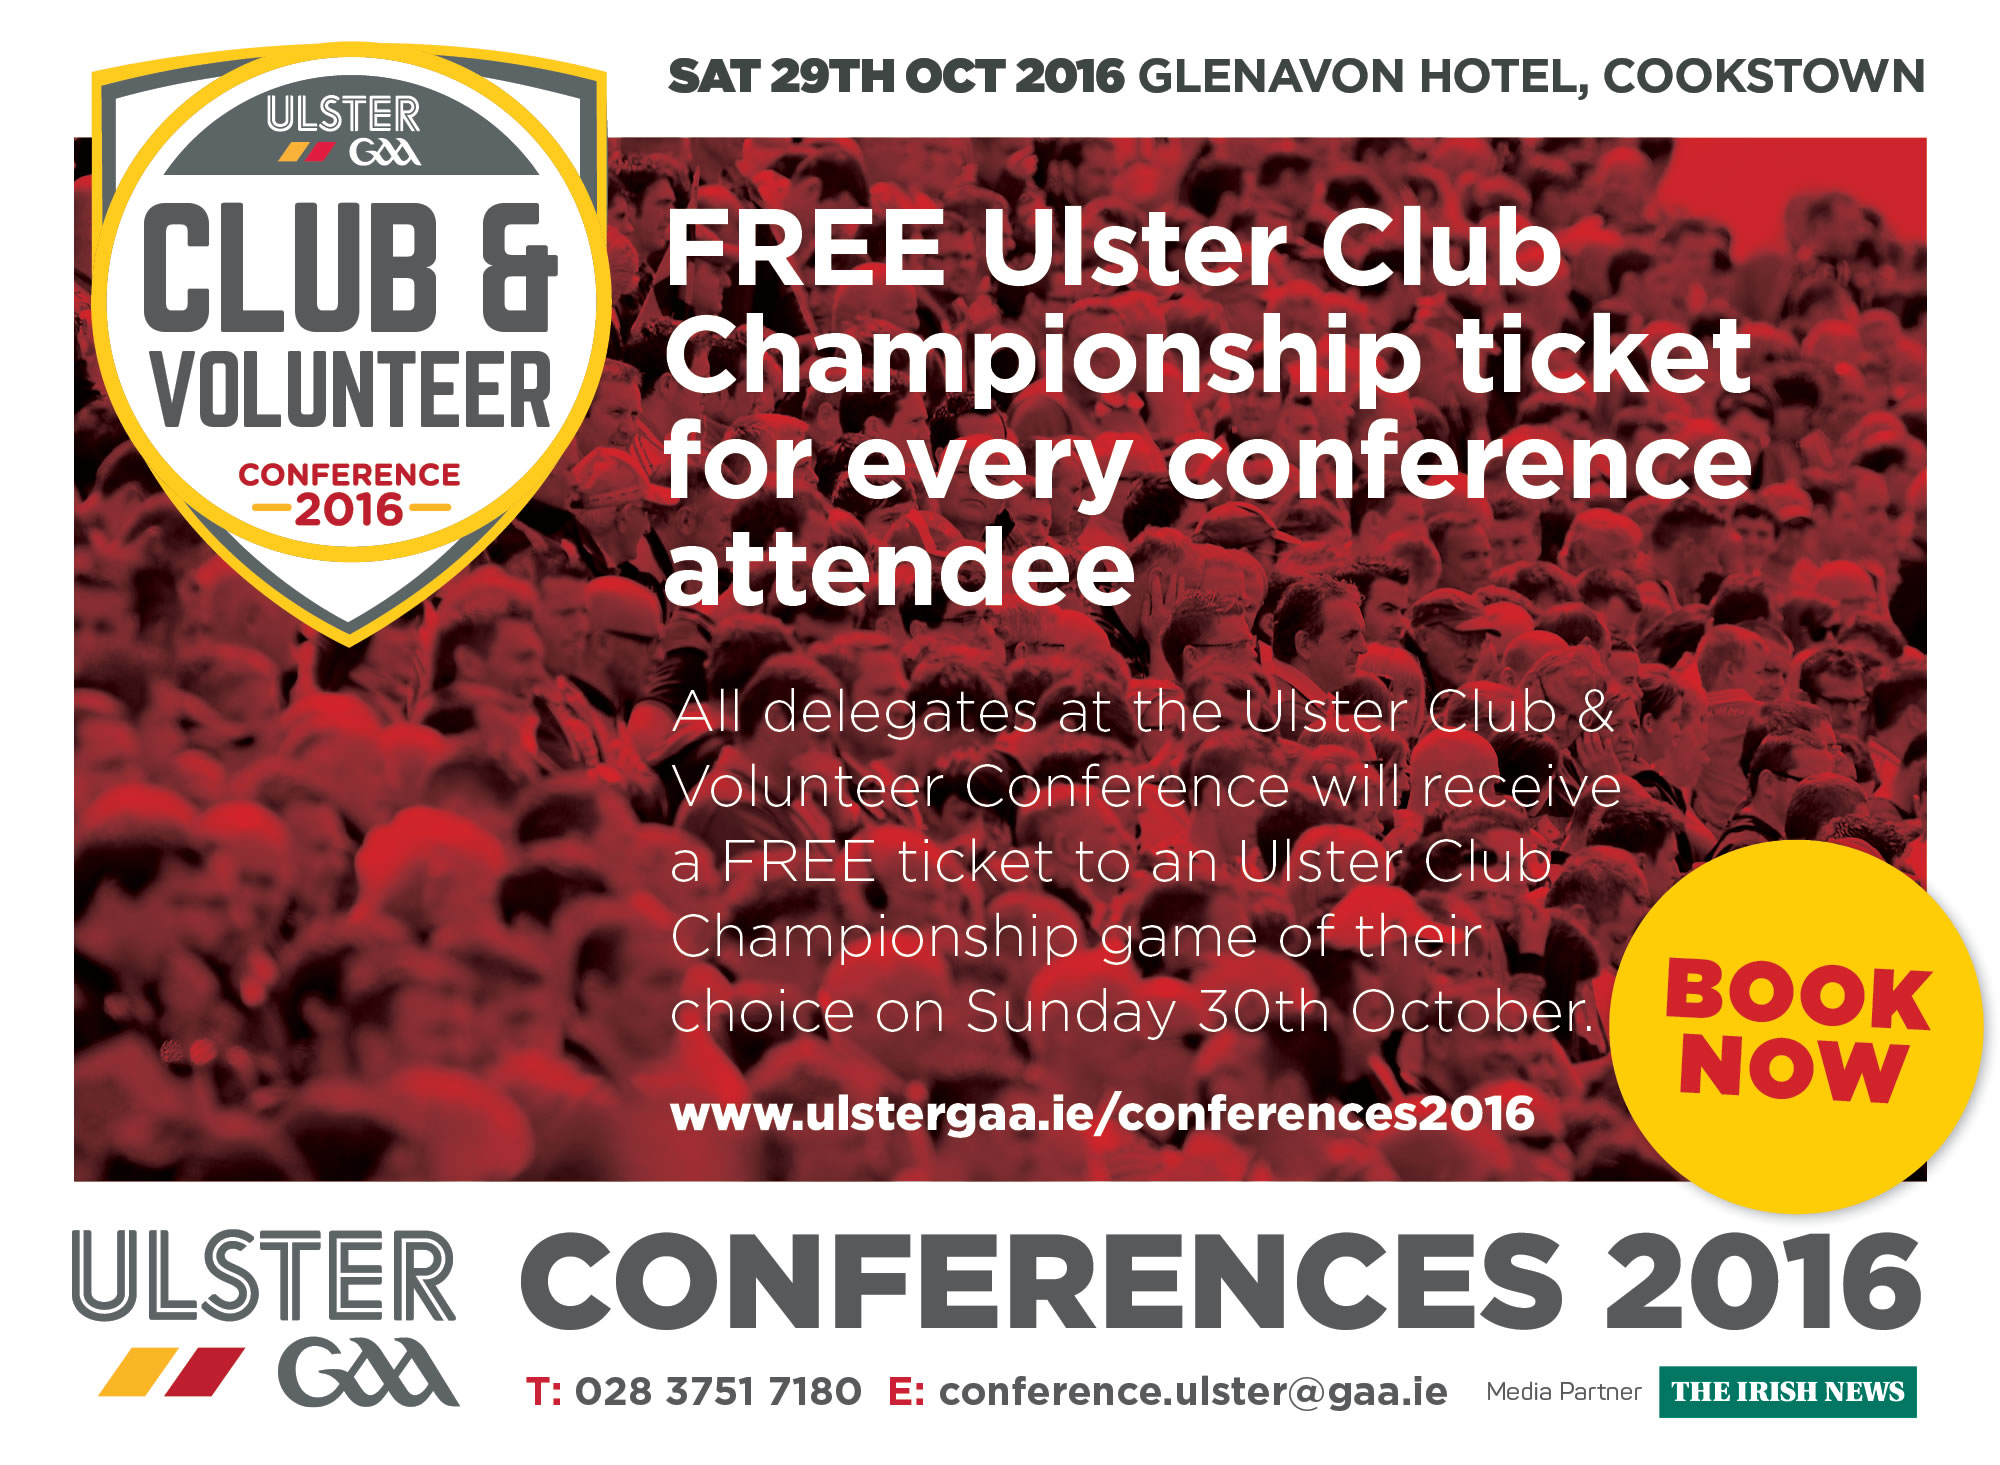 Ulster GAA Club & Volunteer Conference